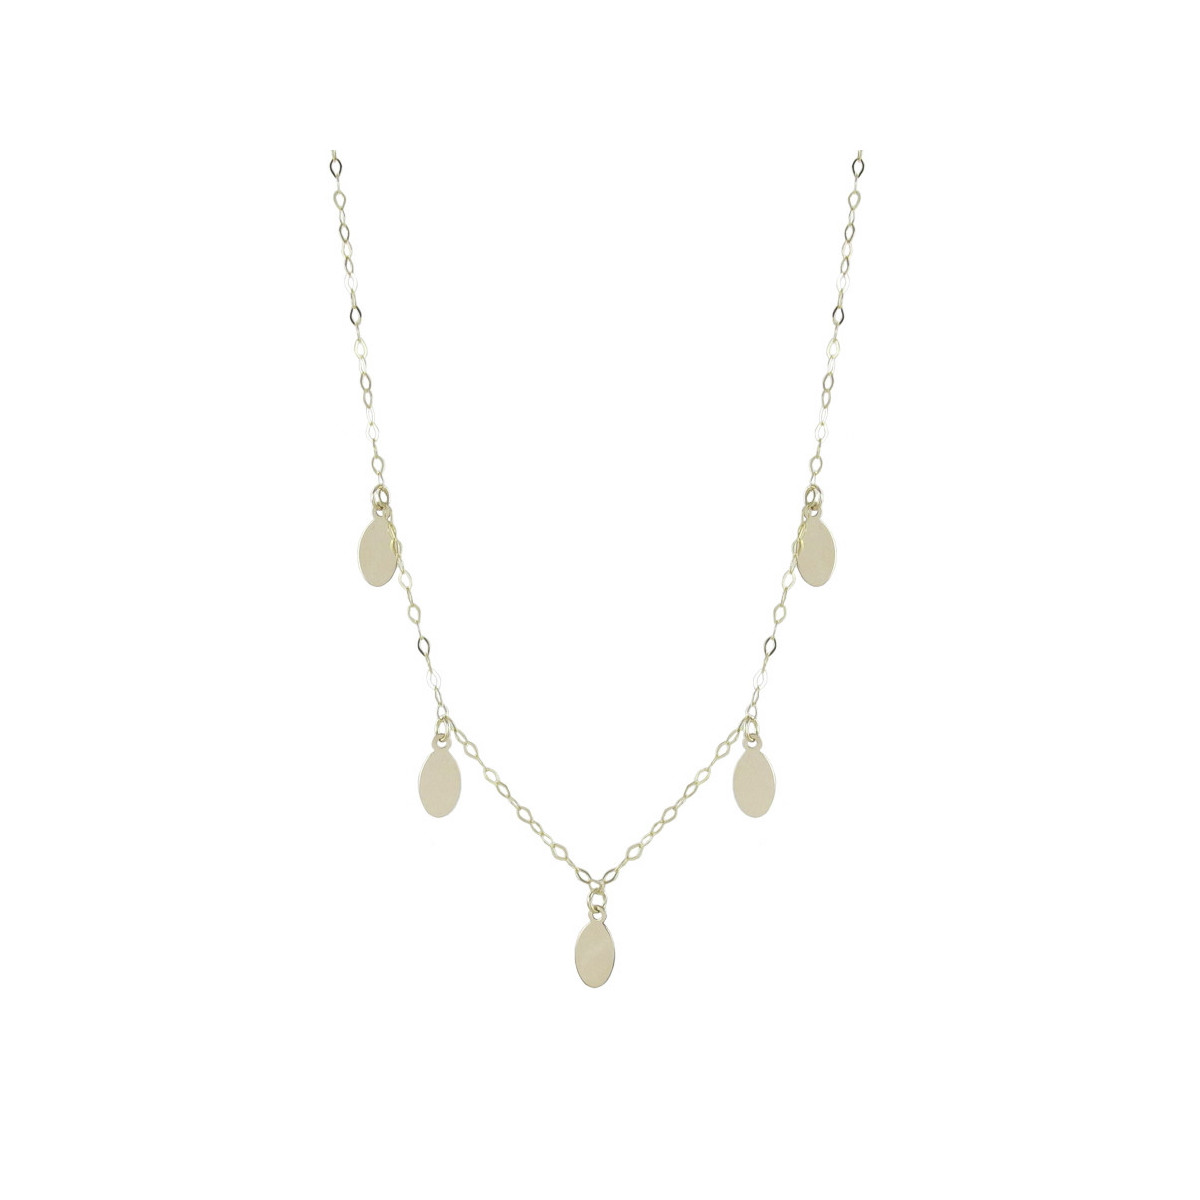 YELLOW GOLD NECKLACE 5 PENDANTS